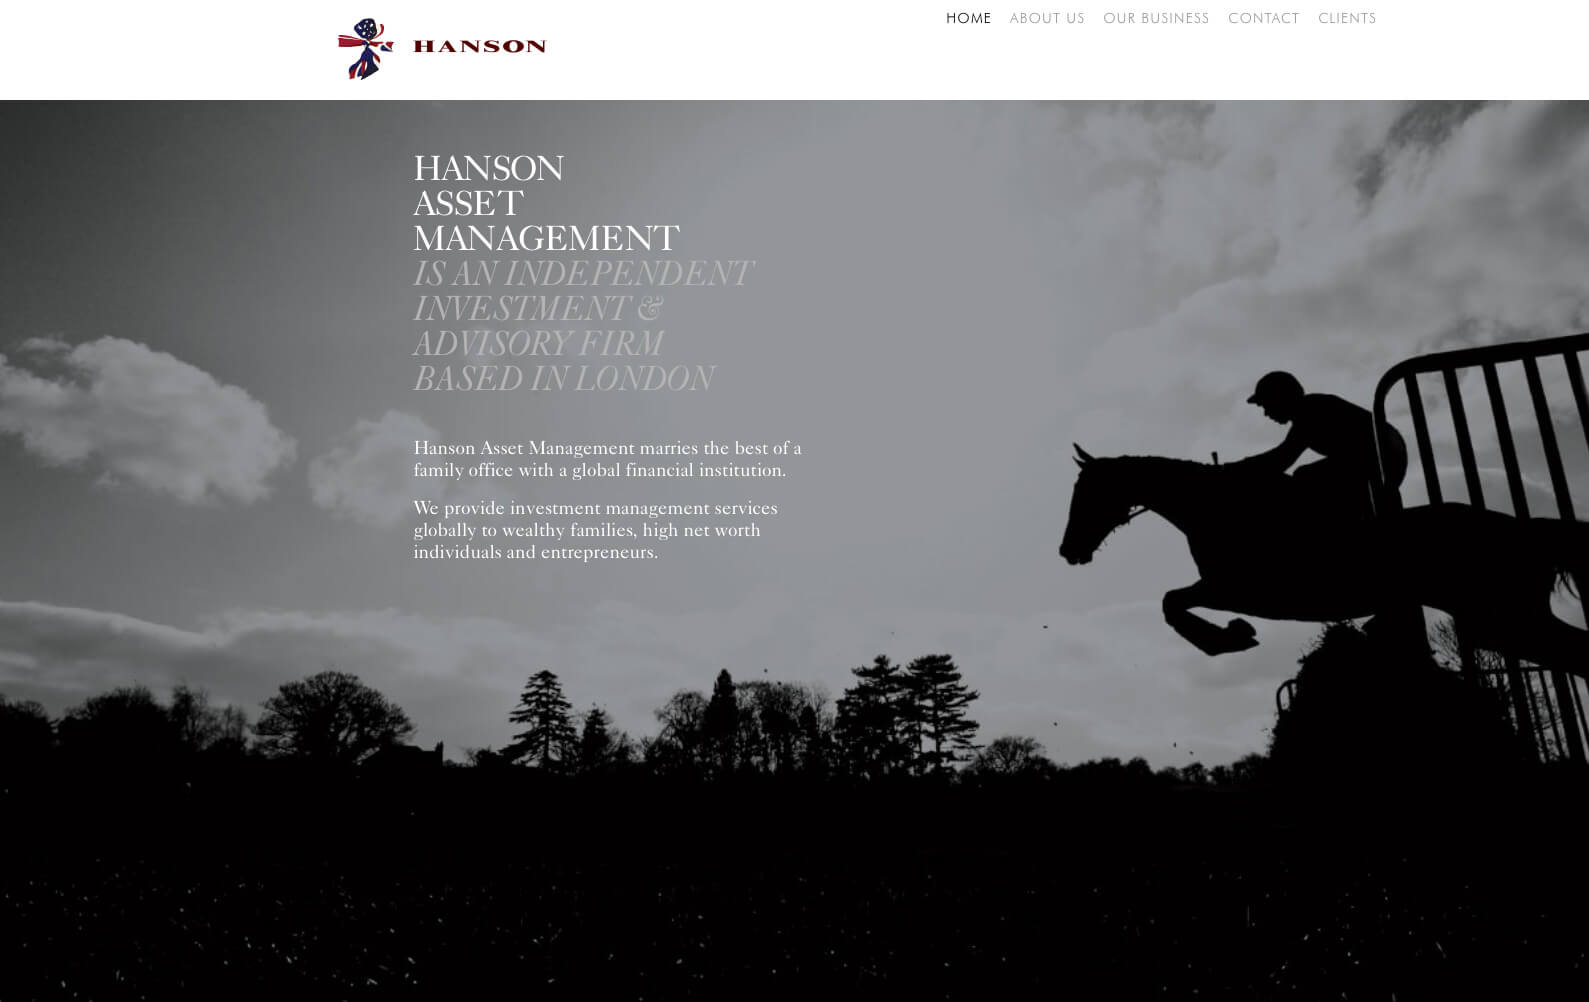 Hanson Asset Management website design